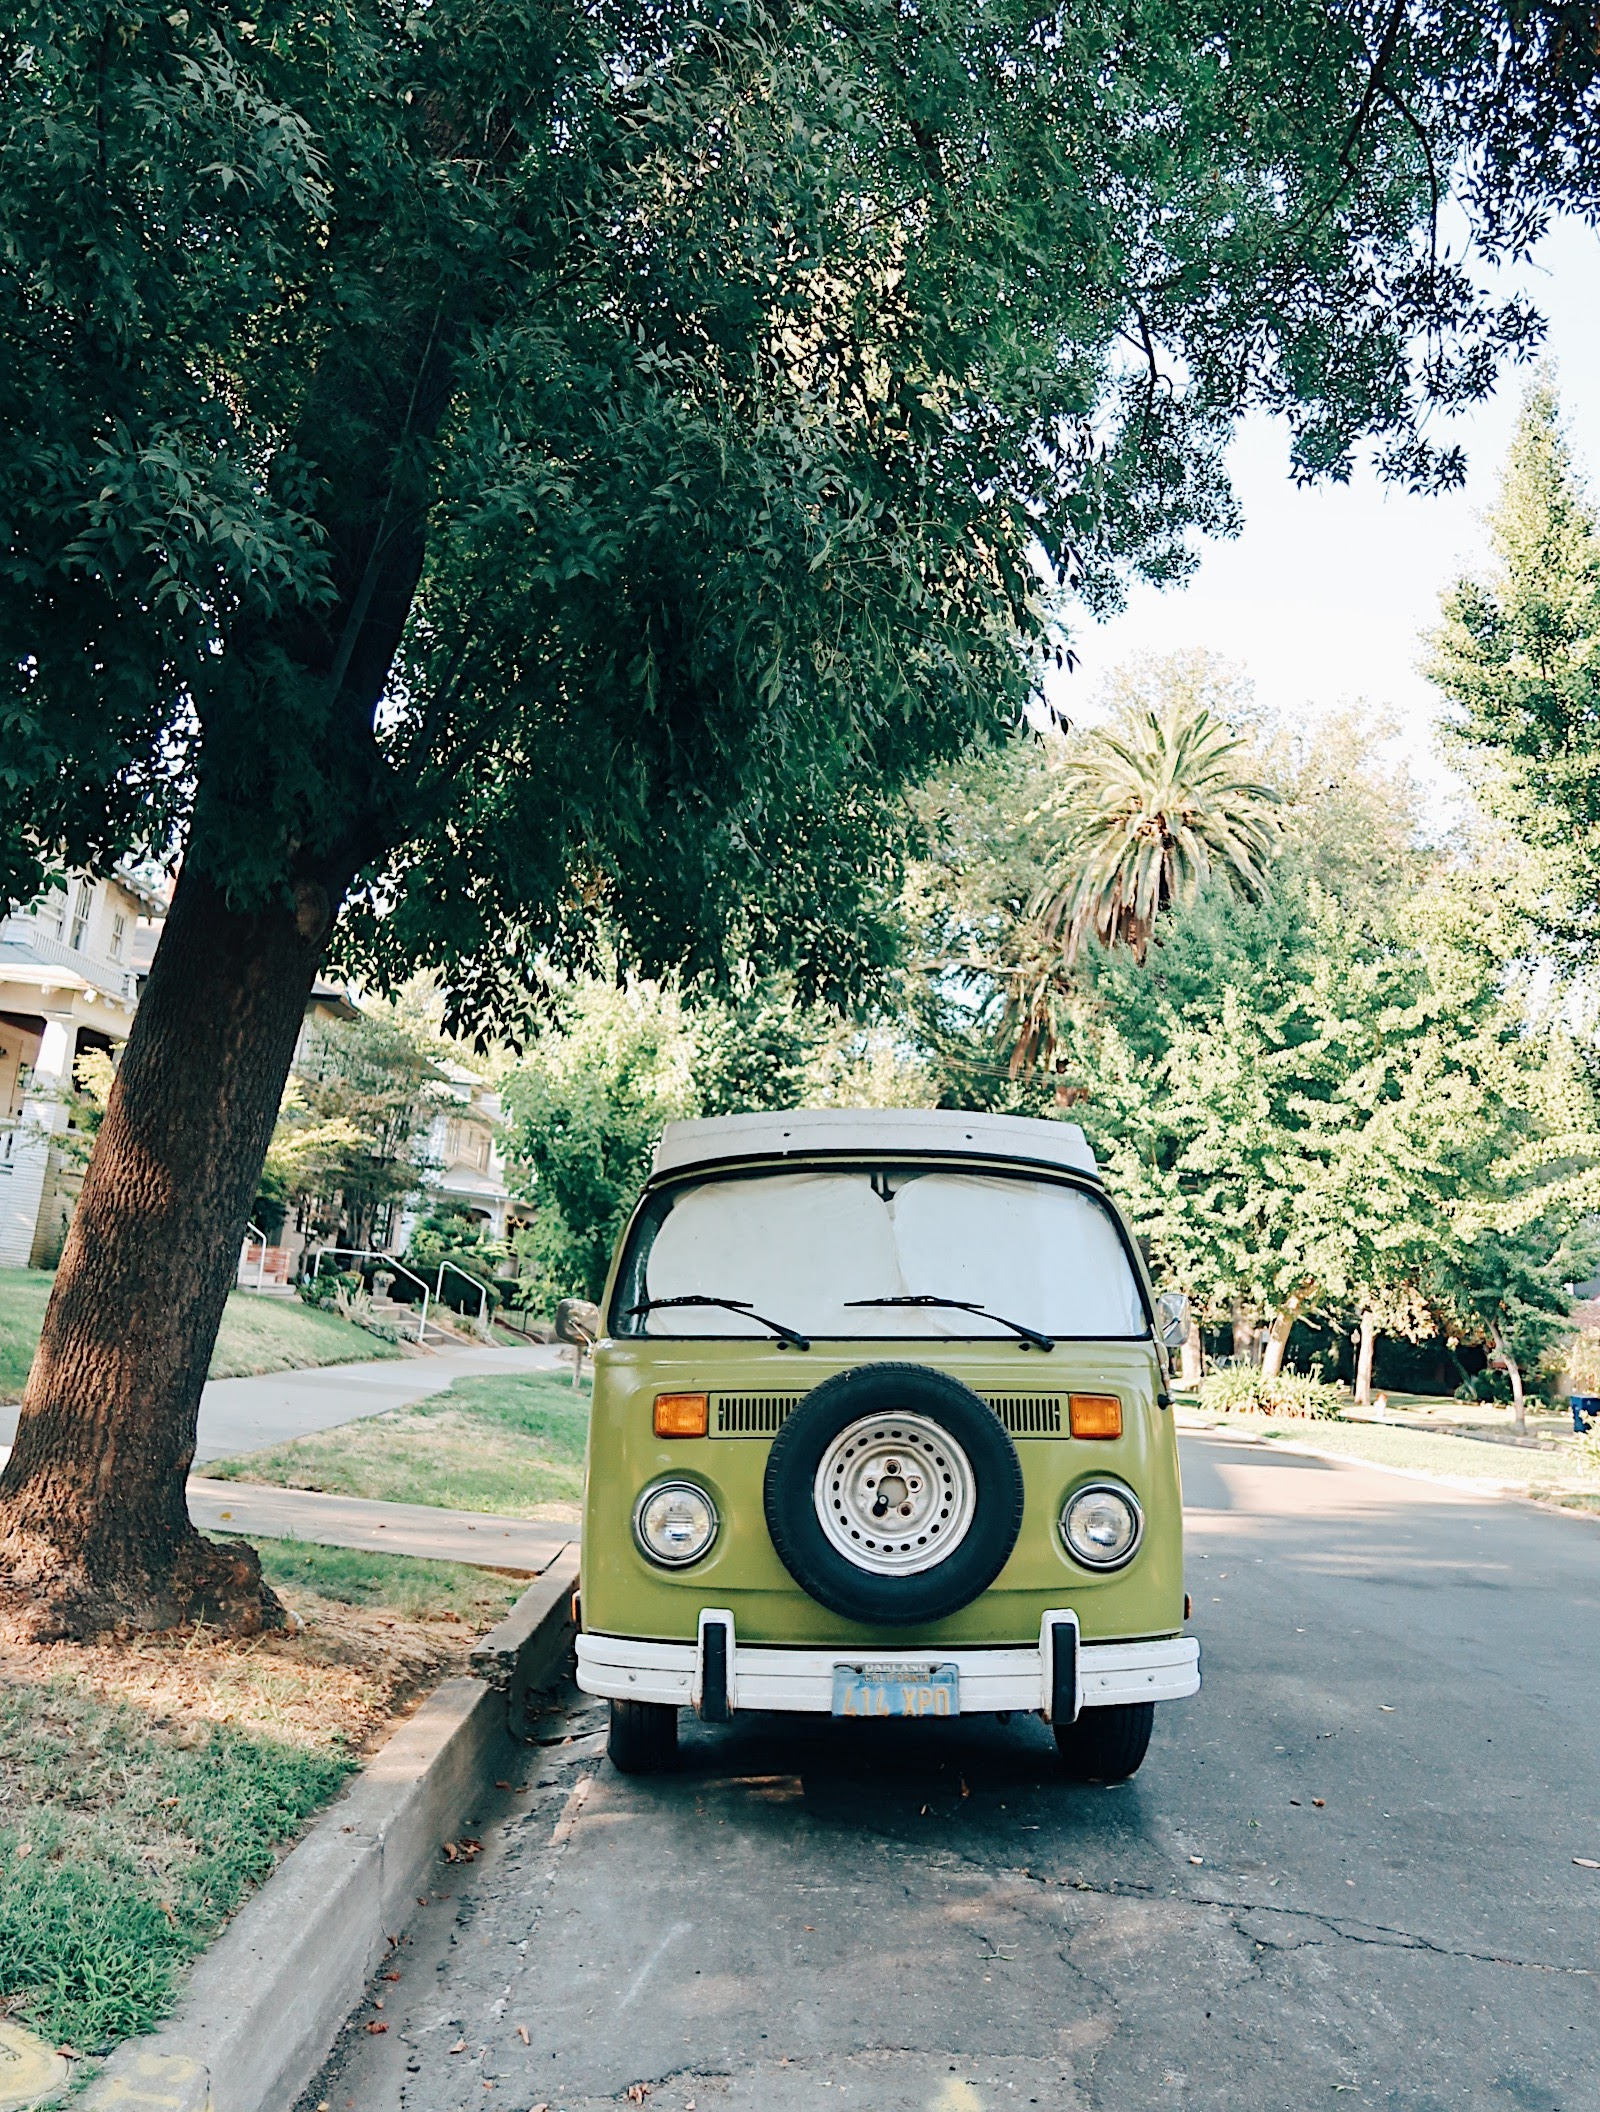 cars of midtown, a vw bus (brandon calls it a deadhead van) that hangs out in boulevard park in sacramento